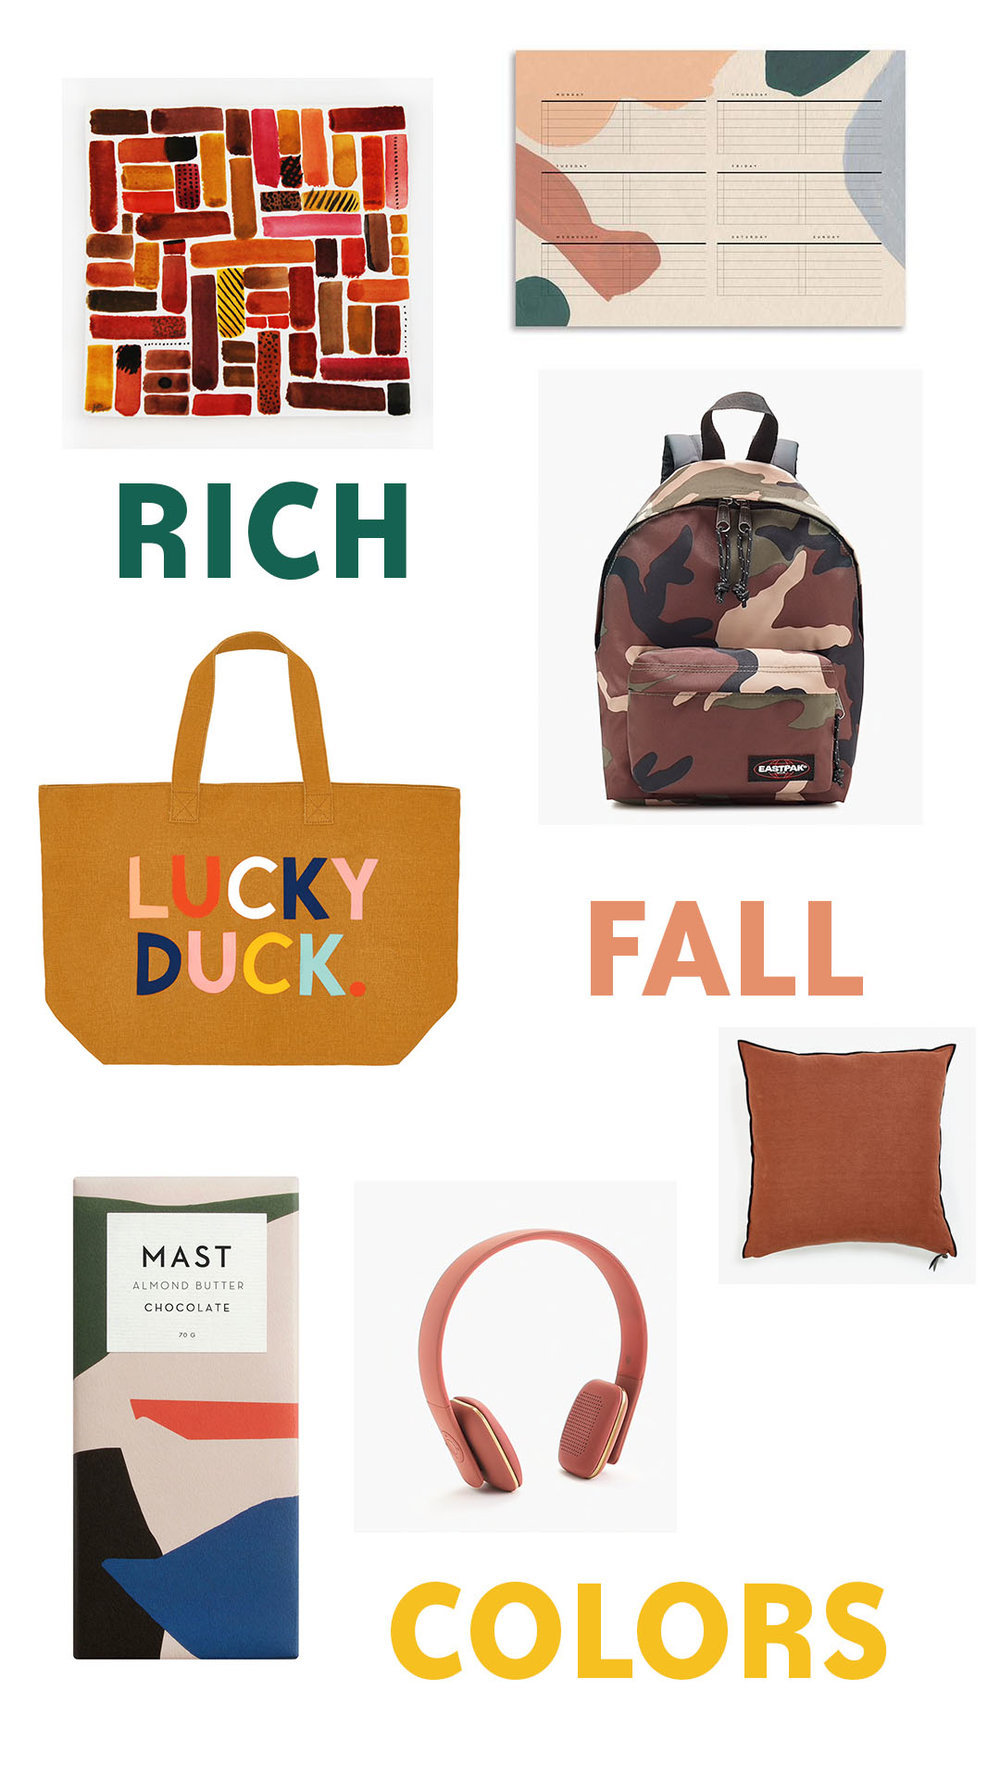 Original Painting - coming soon to our shop.  Planner  - $14.  Backpack  - $45.  Pillow  - $150 - $175.  Lucky Duck Tote  - $69.  Chocolate  - $72 / case.  Headphones  - $145.